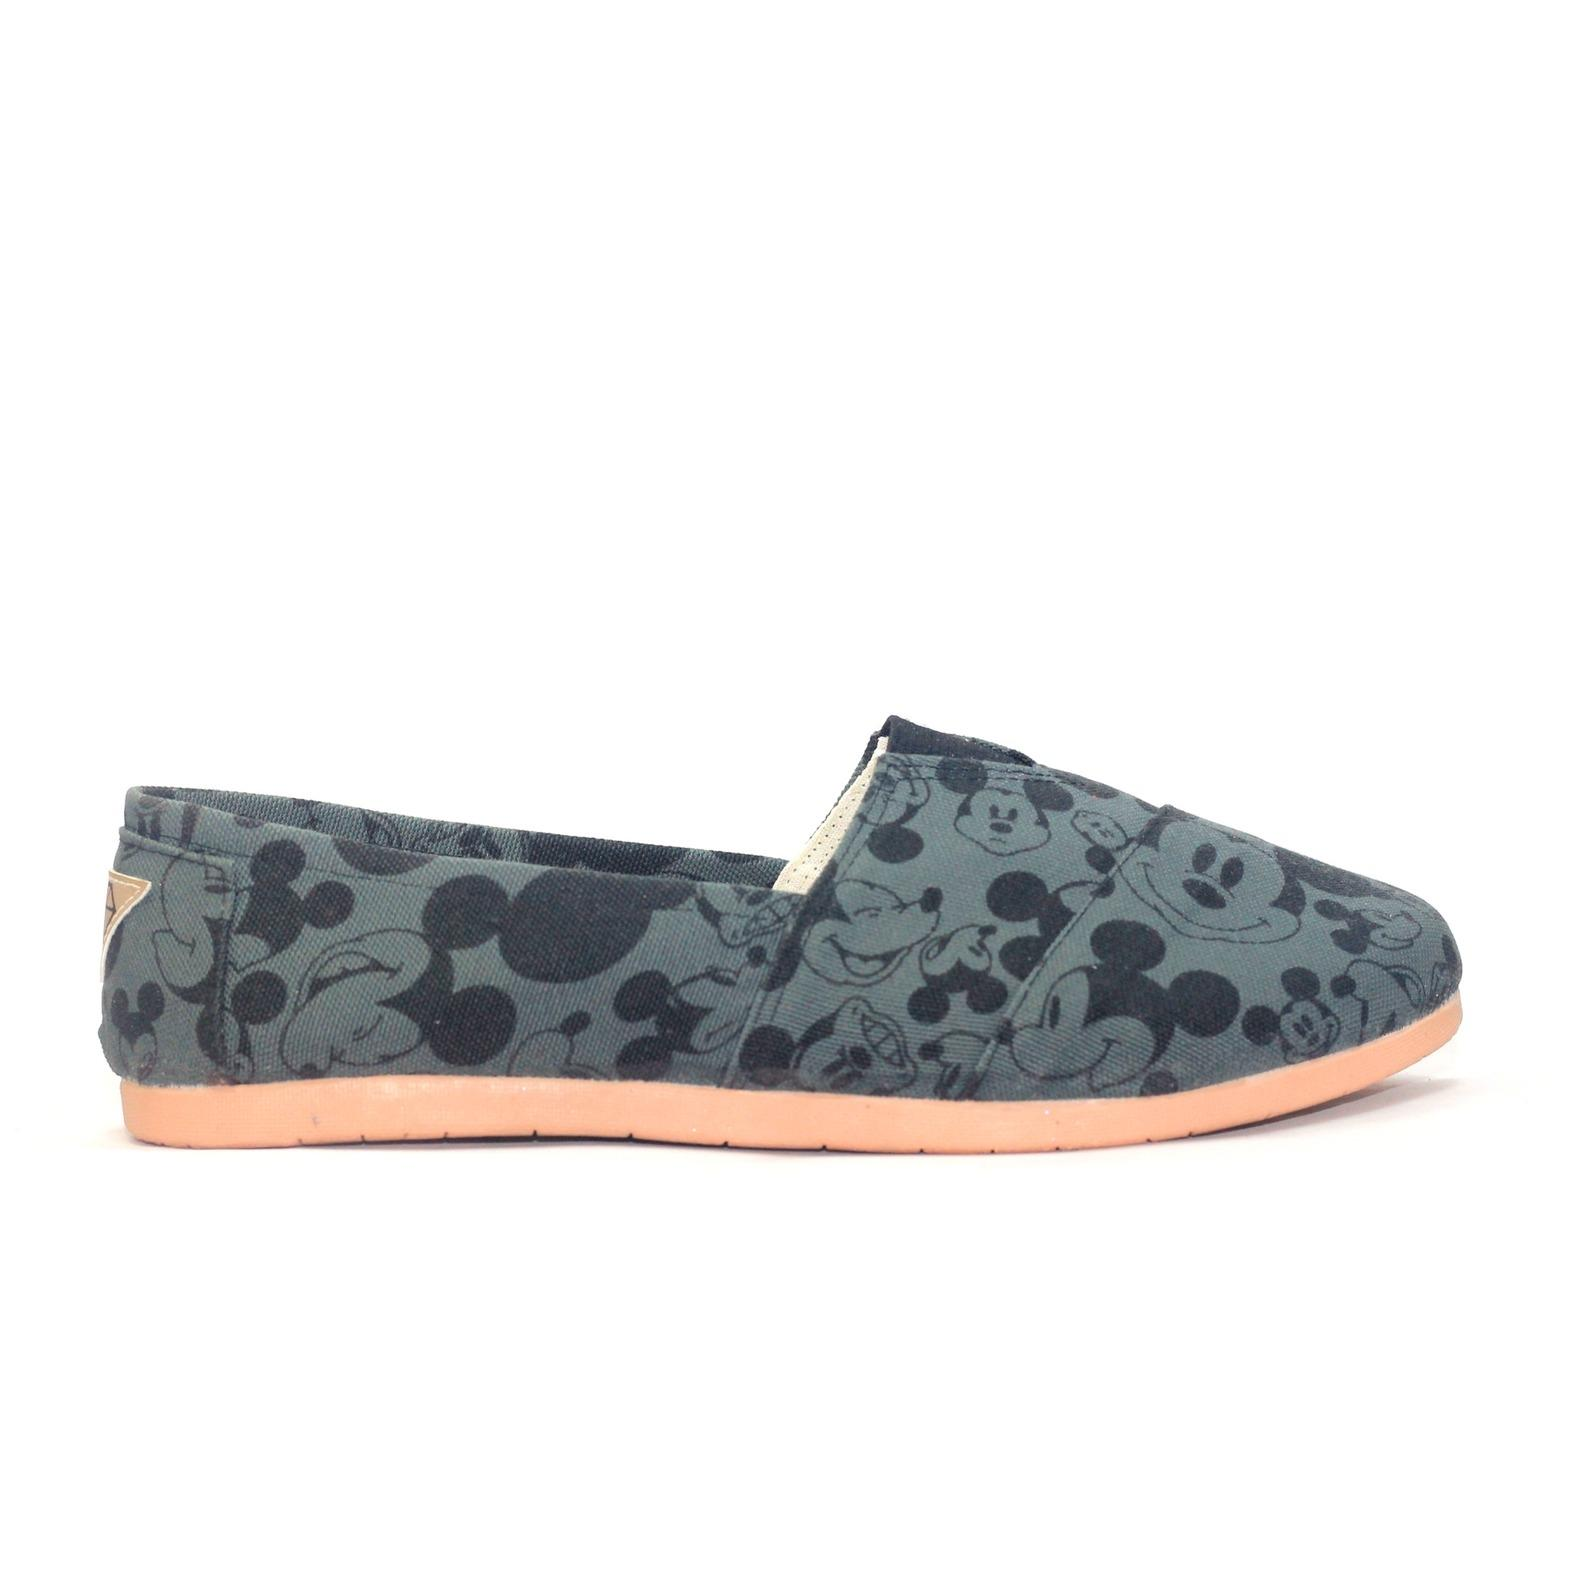 JRC flatshoes slipon hitam putih mickey mouse disney model toms wakai